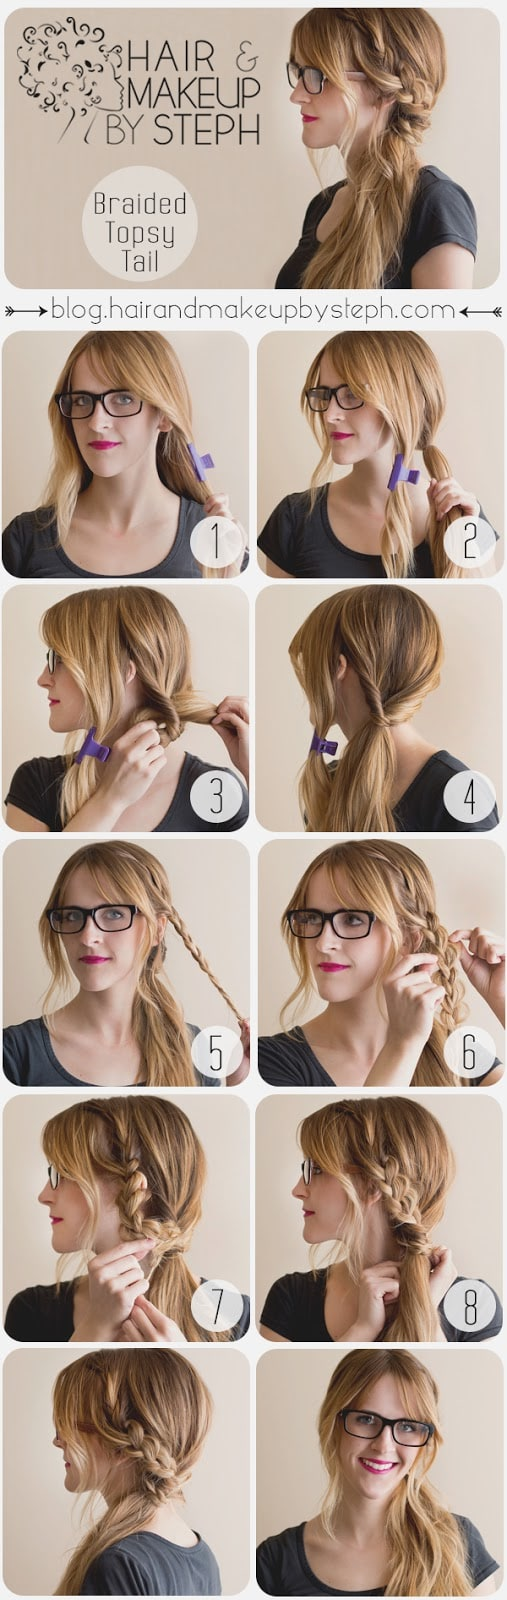 14 Simple And Easy Lazy Girl Hairstyle Tips That Are Done For Less ...